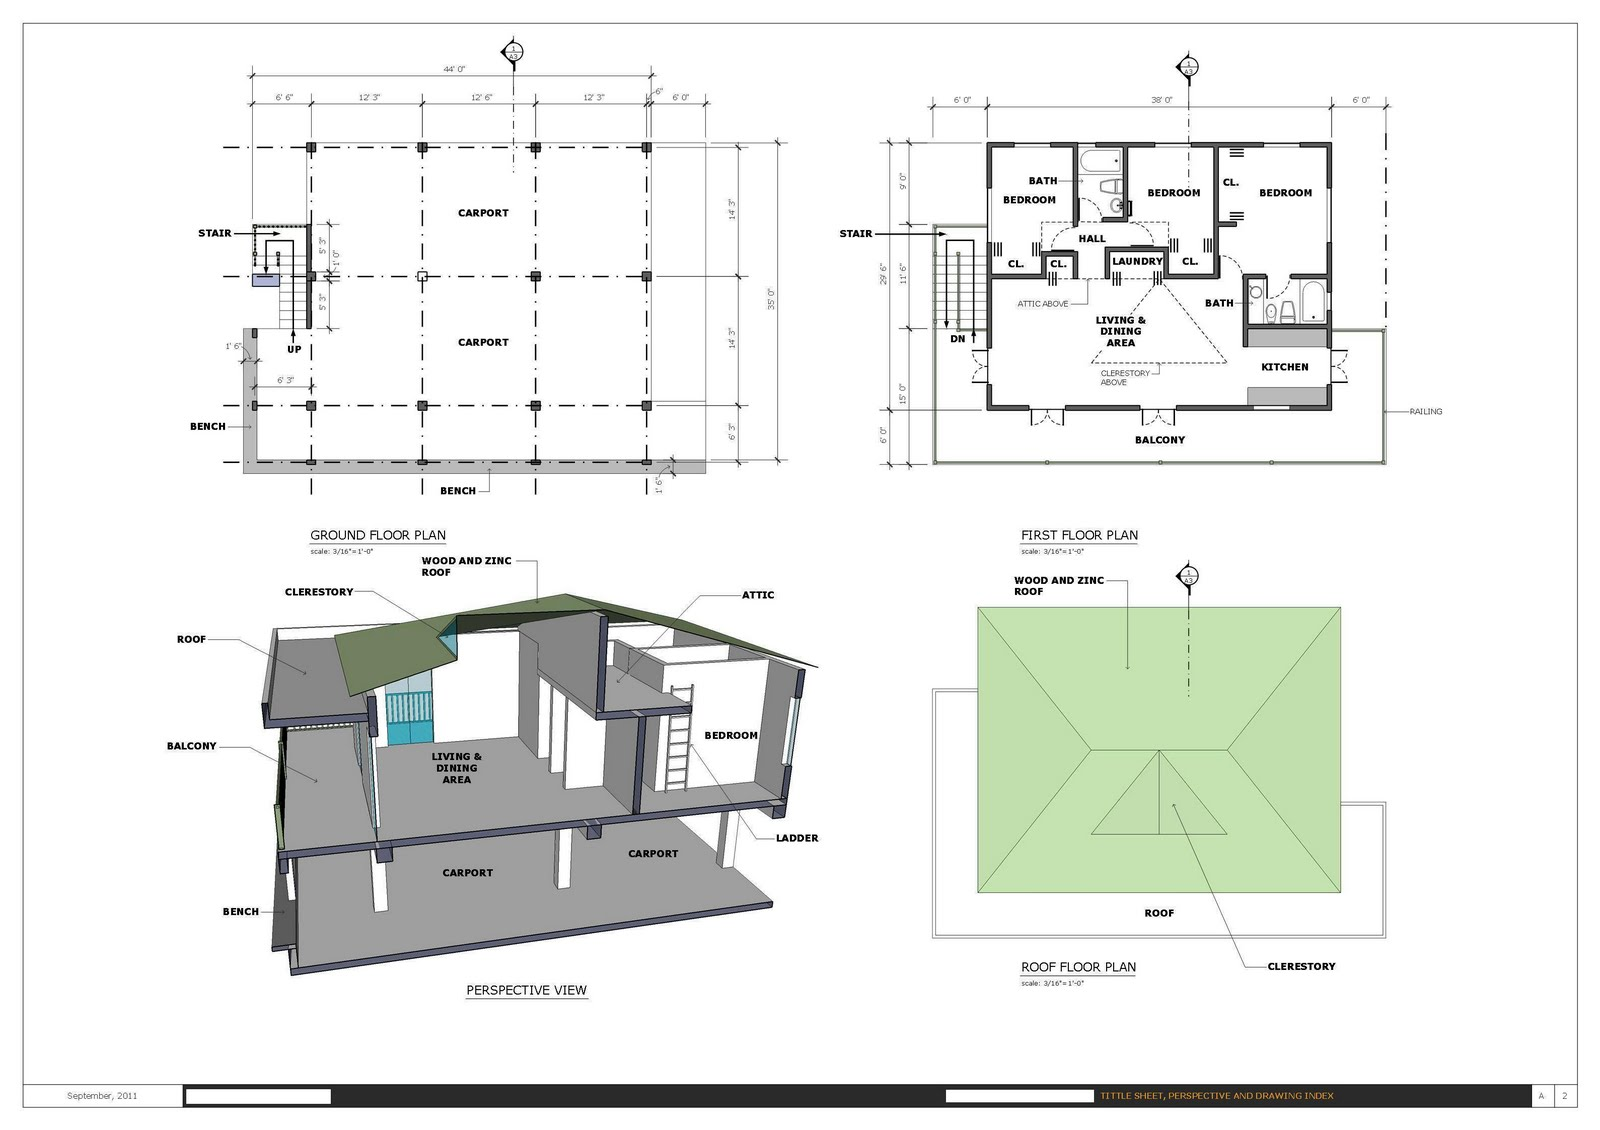 Juan h santiago sketchup layout work flow Floor plan view